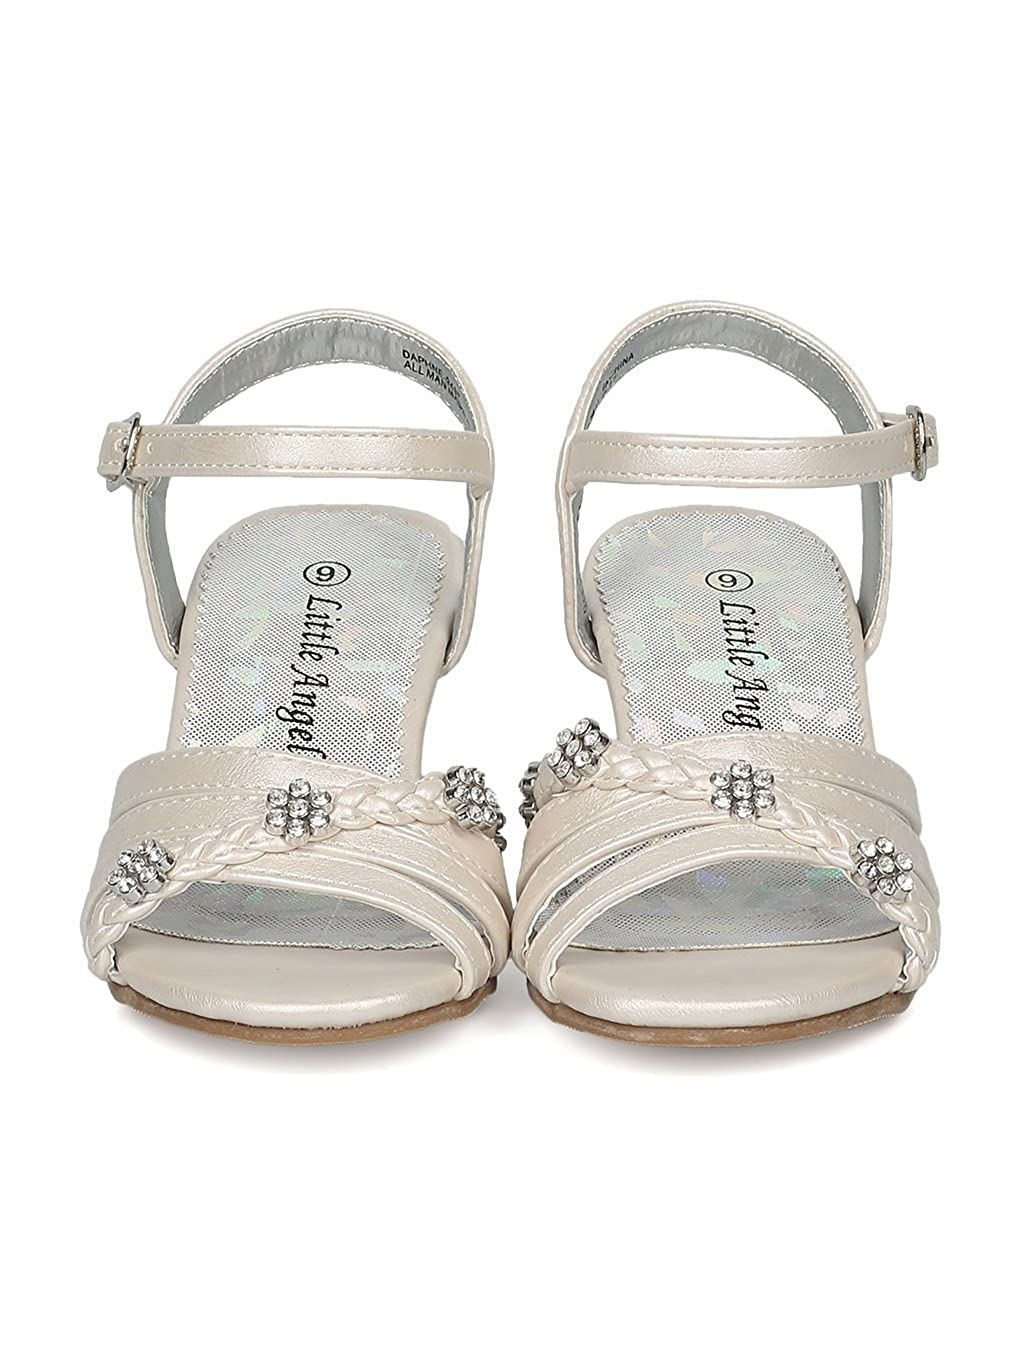 c383794cf Alrisco Girls Open Toe Rhinestone Flower Ankle Strap Kiddie Heel Sandal  HC28 Little Angel larger image